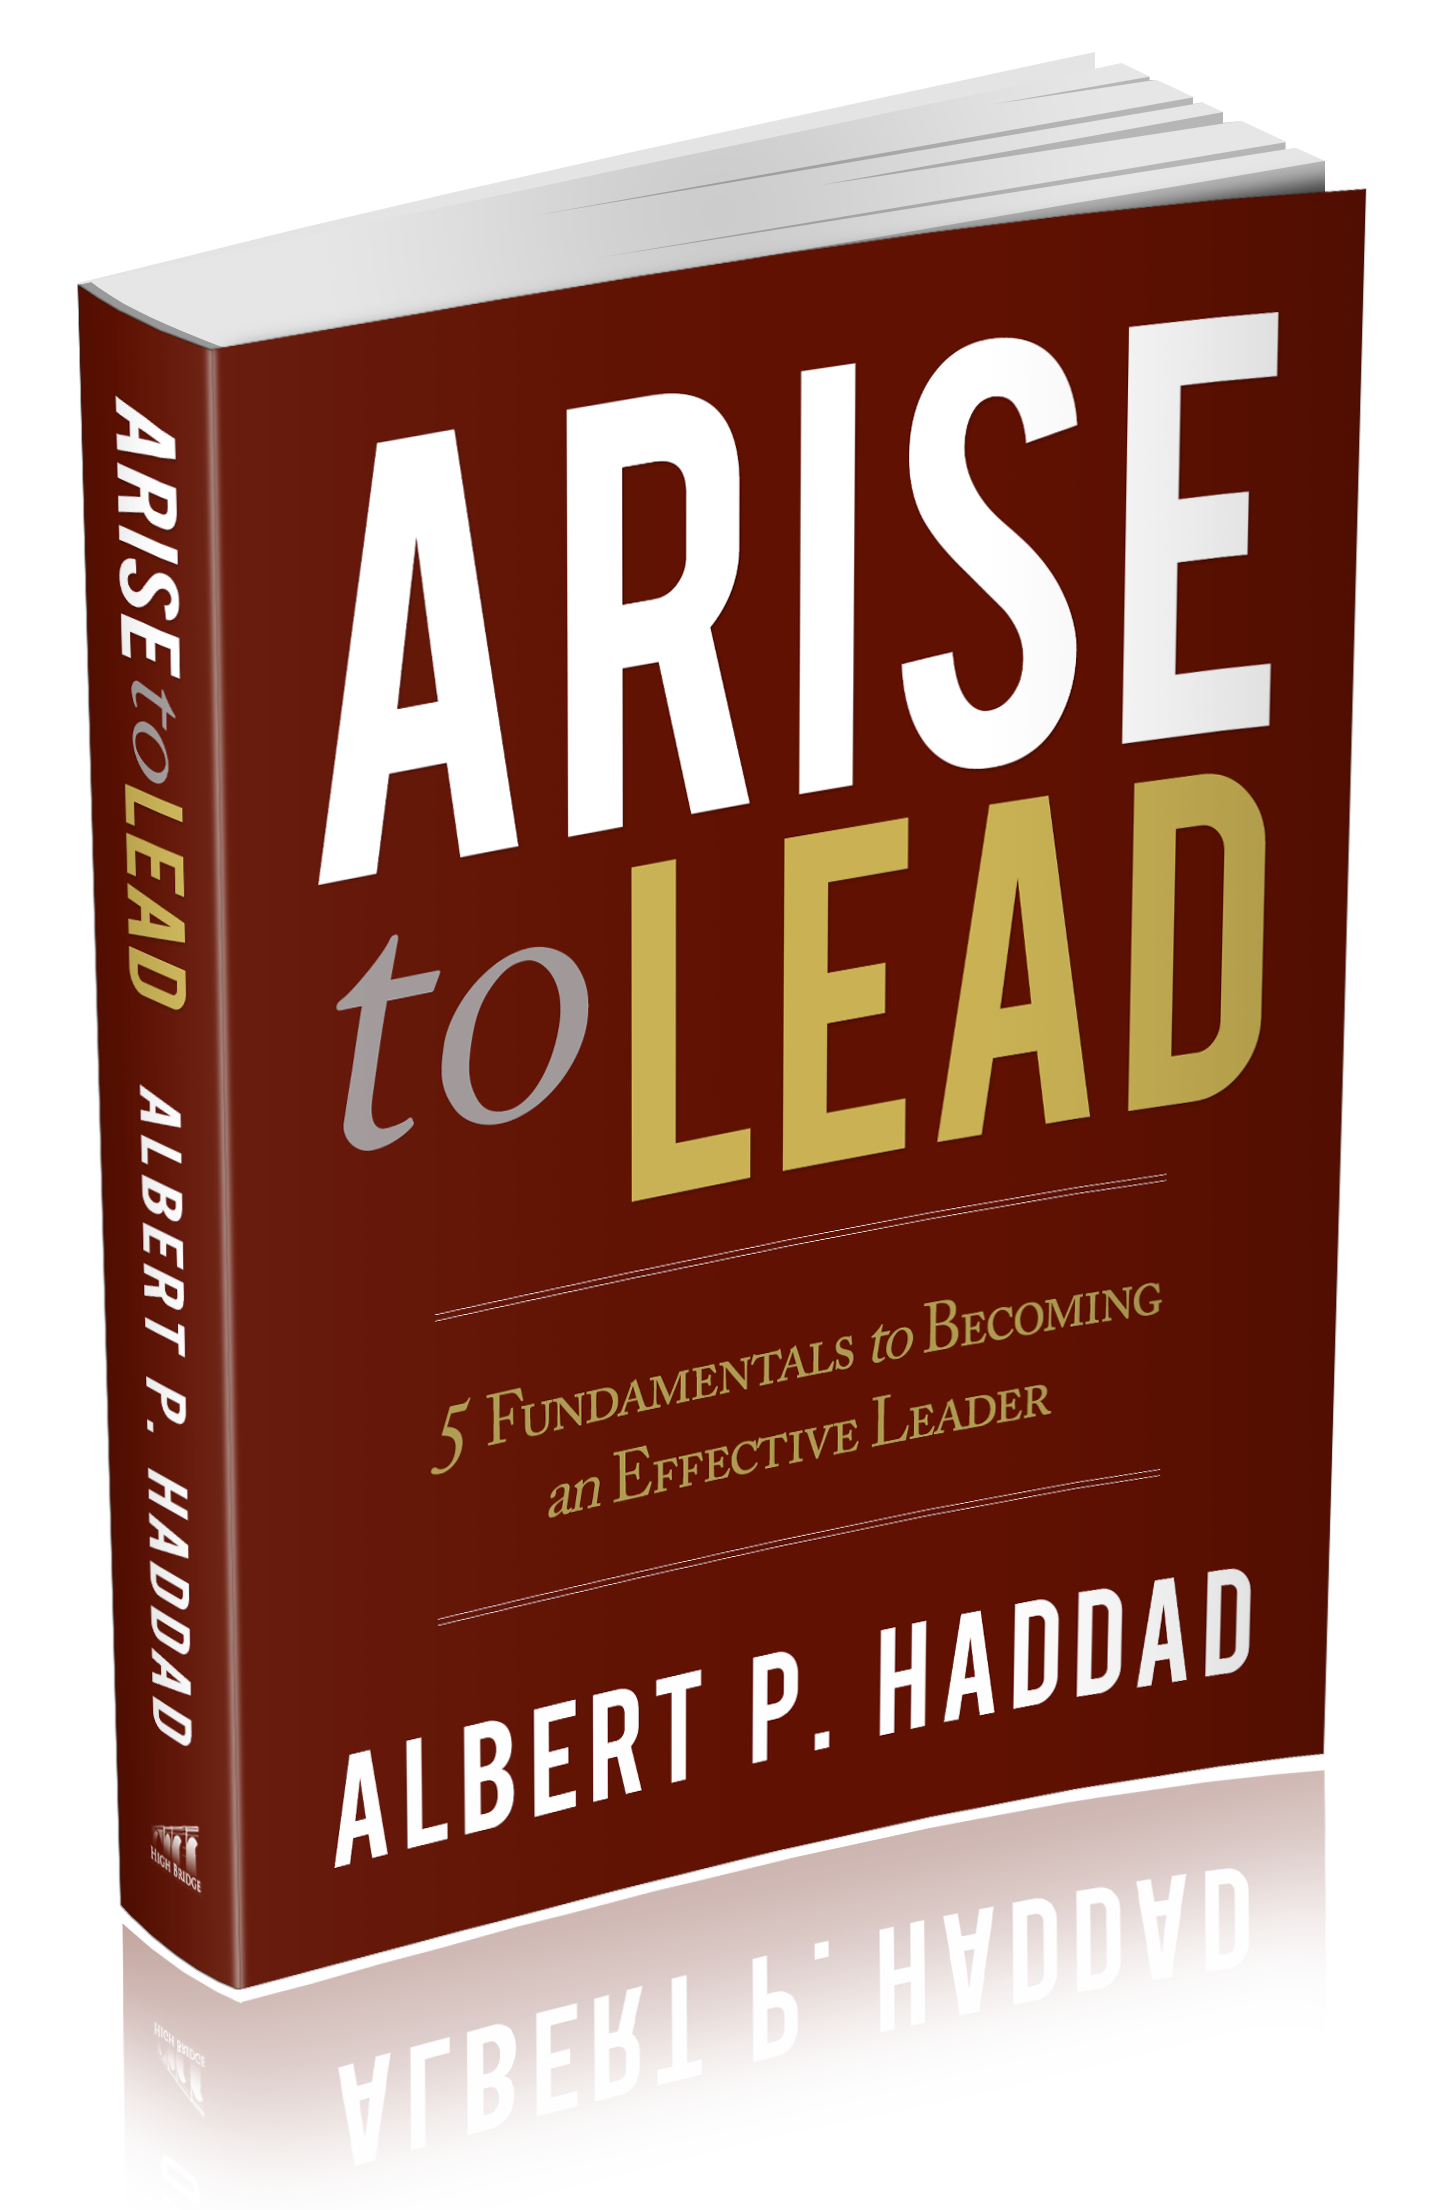 Book Cover Transparent Background : Quot arise to lead fundamentals becoming an effective